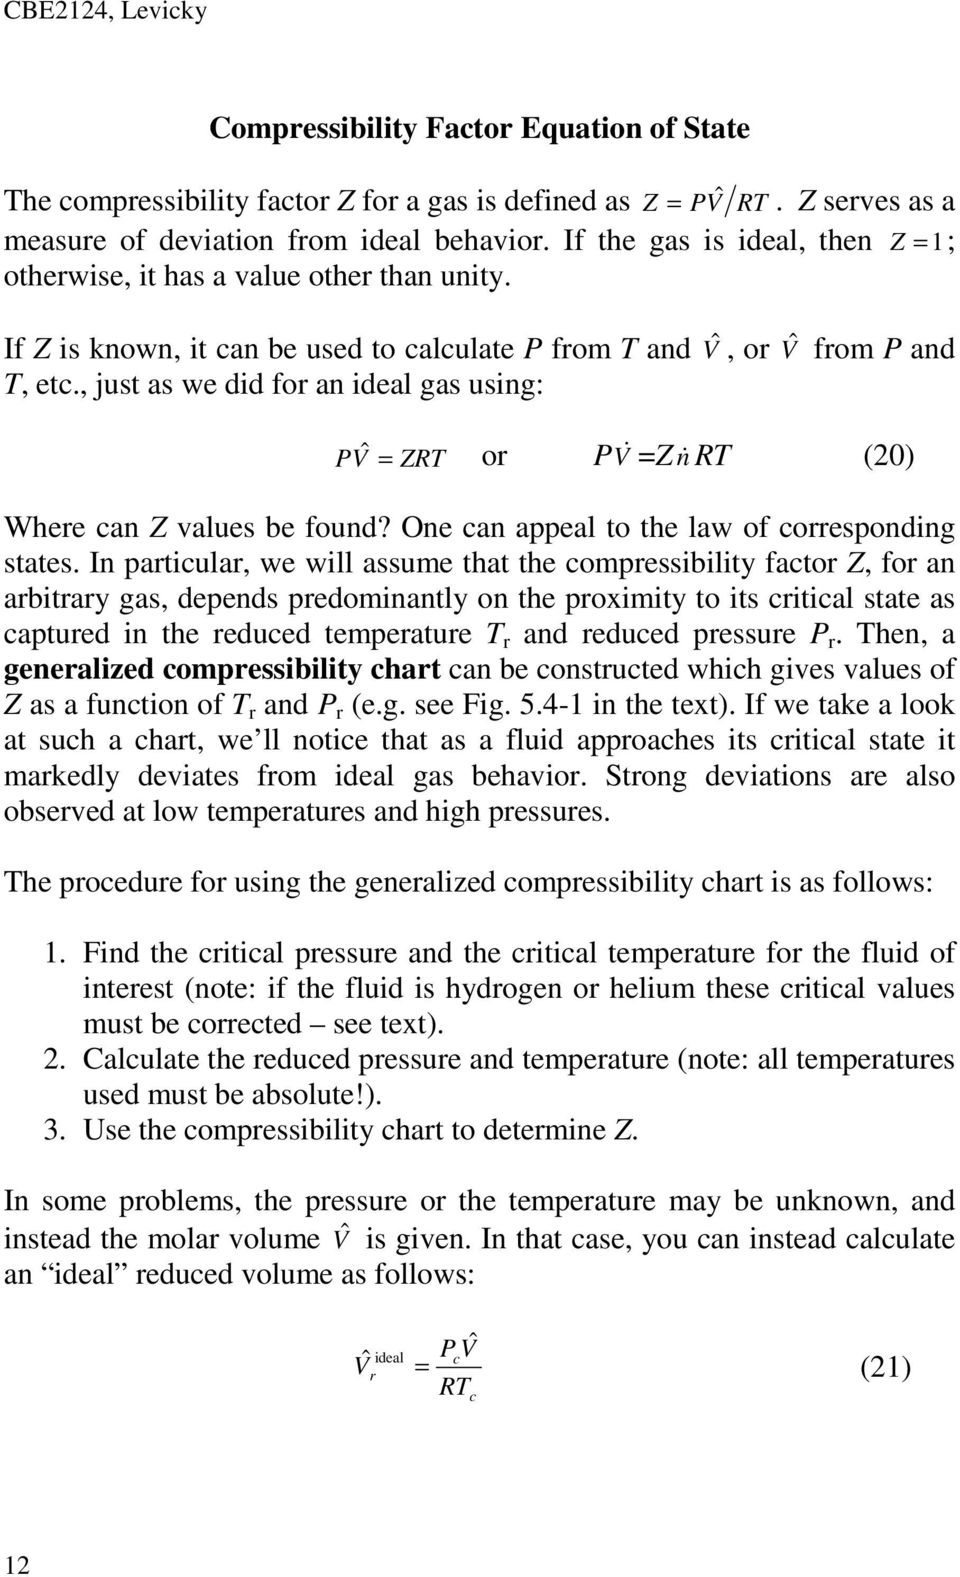 , just as we did for an ideal gas using: ˆ or PV & =Z n& RT (20) P V = ZRT Where an Z values be found? One an appeal to the law of orresponding states.